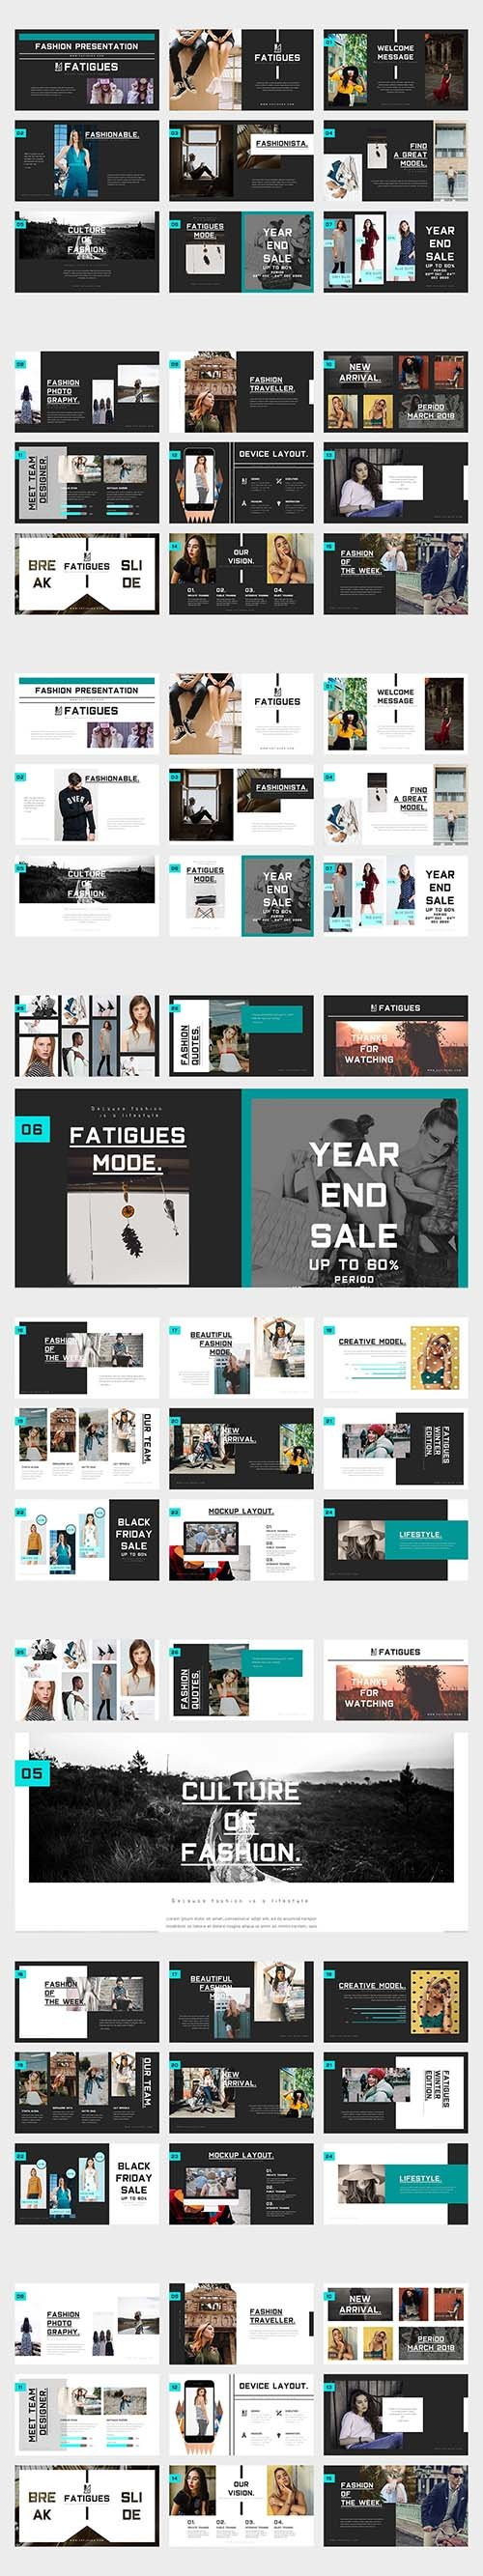 Fatigues Fashion Lookbook Powerpoint Template